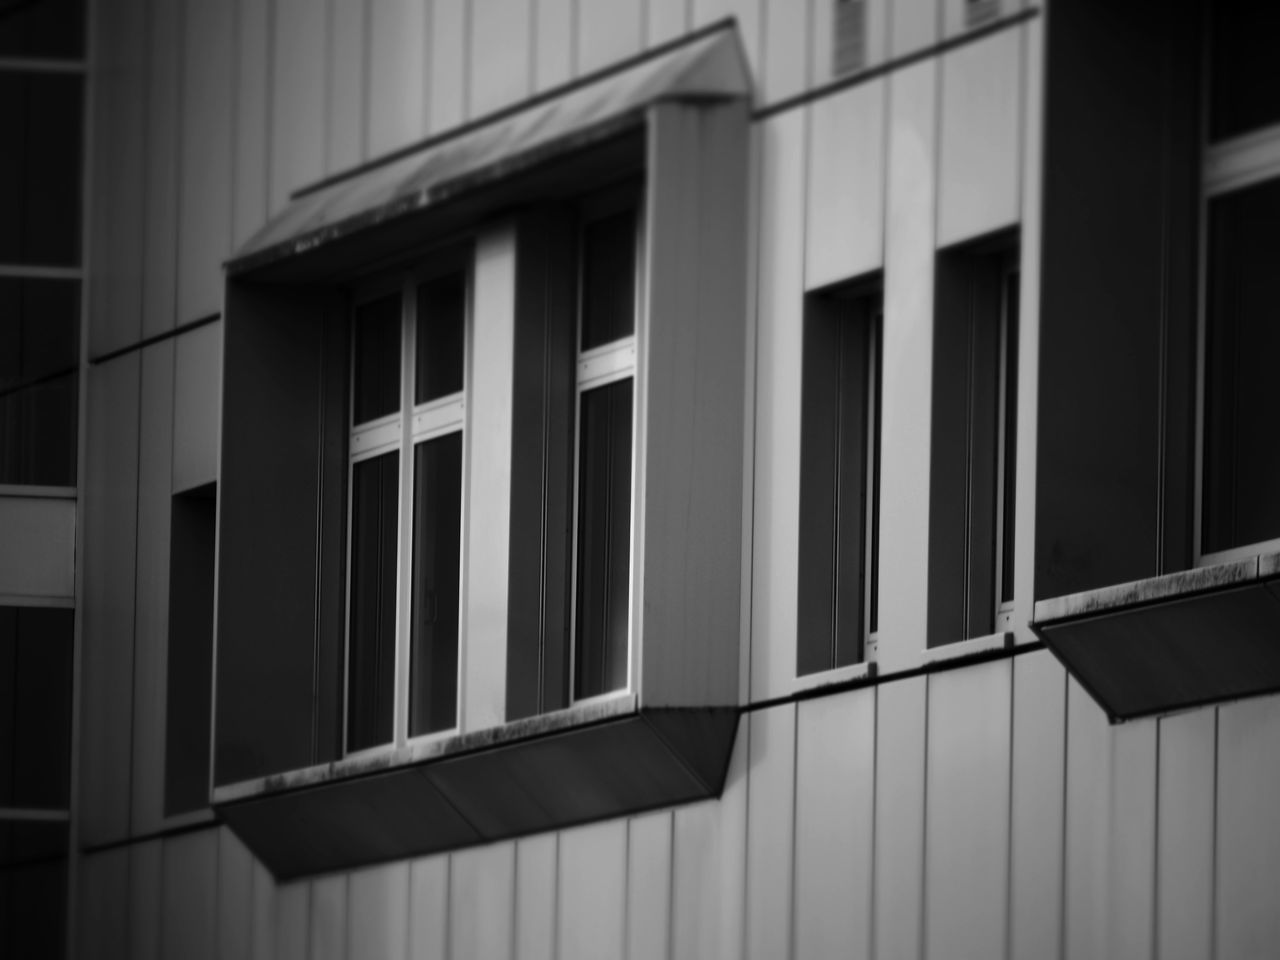 architecture, building exterior, built structure, window, no people, outdoors, day, city, close-up